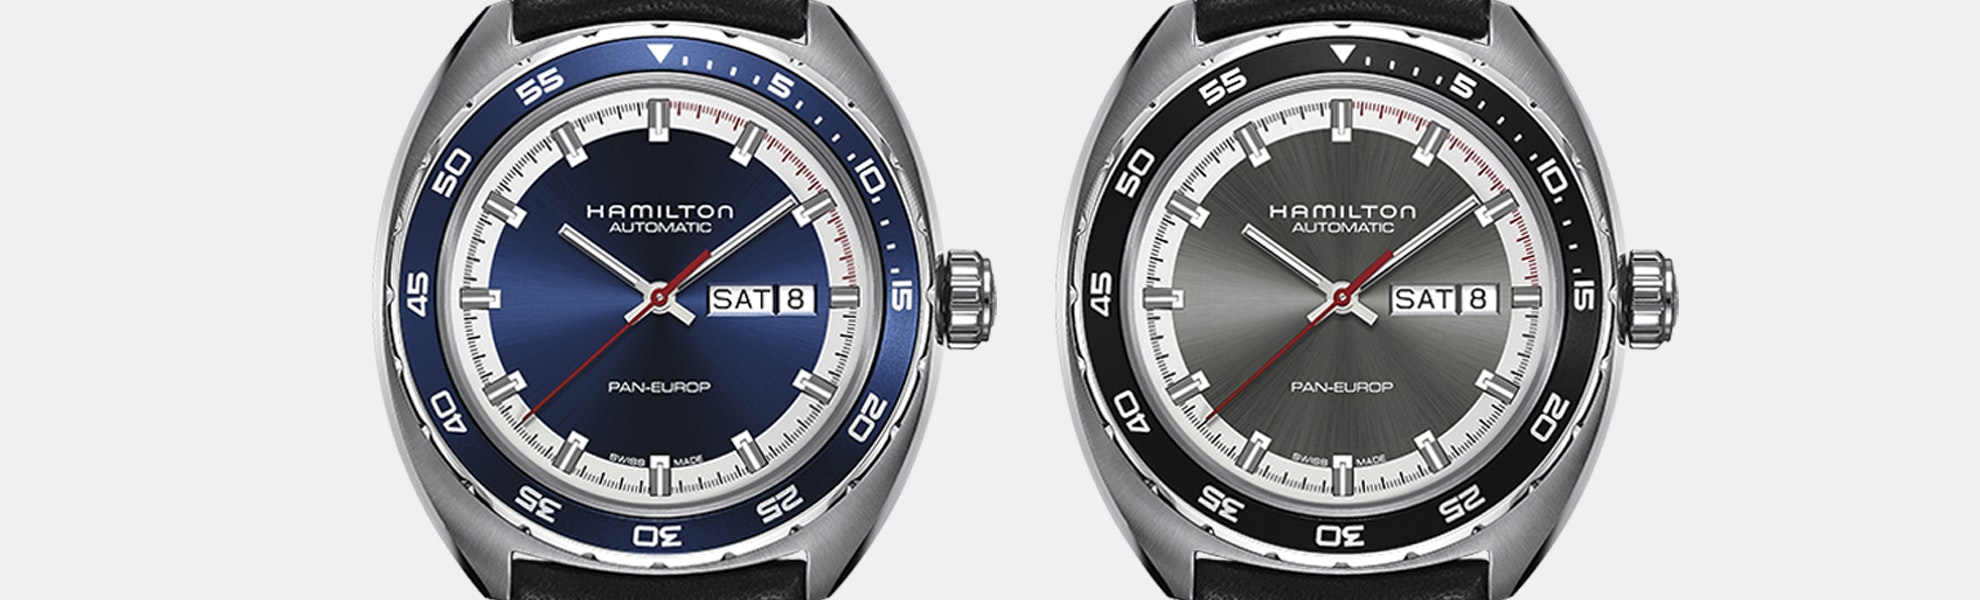 Hamilton Pan Europ Automatic Watch